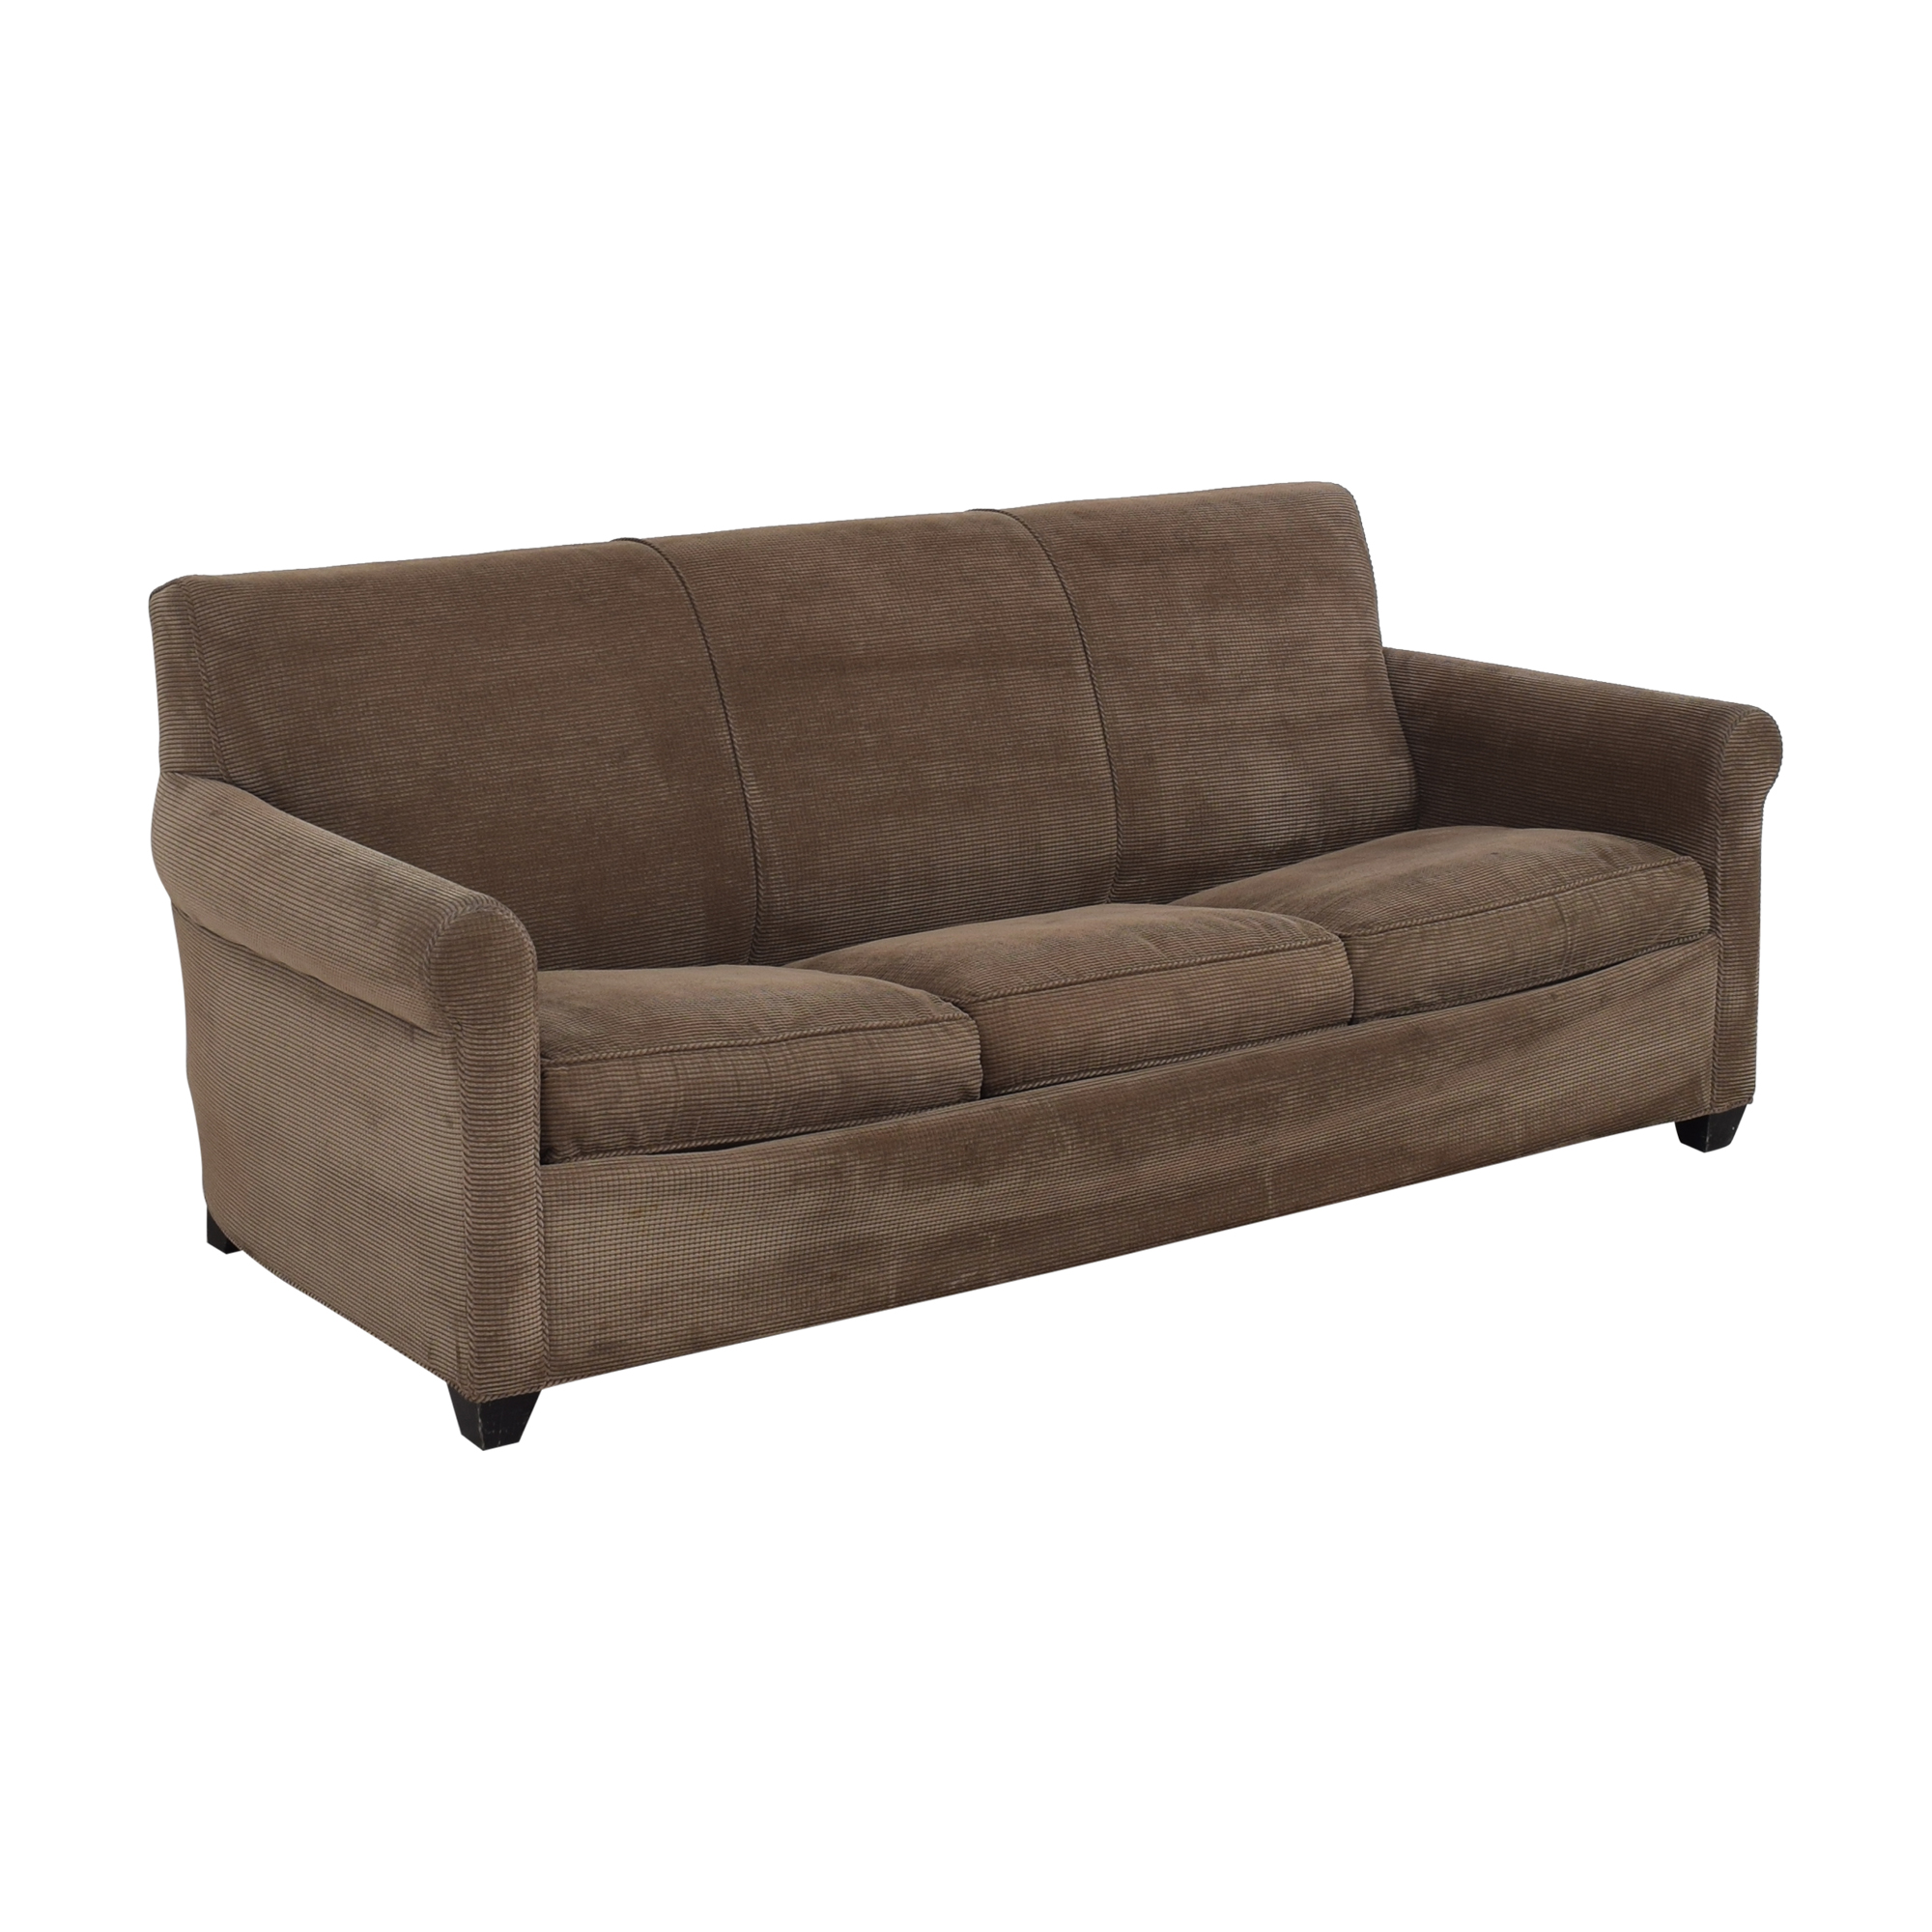 shop Crate & Barrel Crate & Barrel Sleeper Sofa online